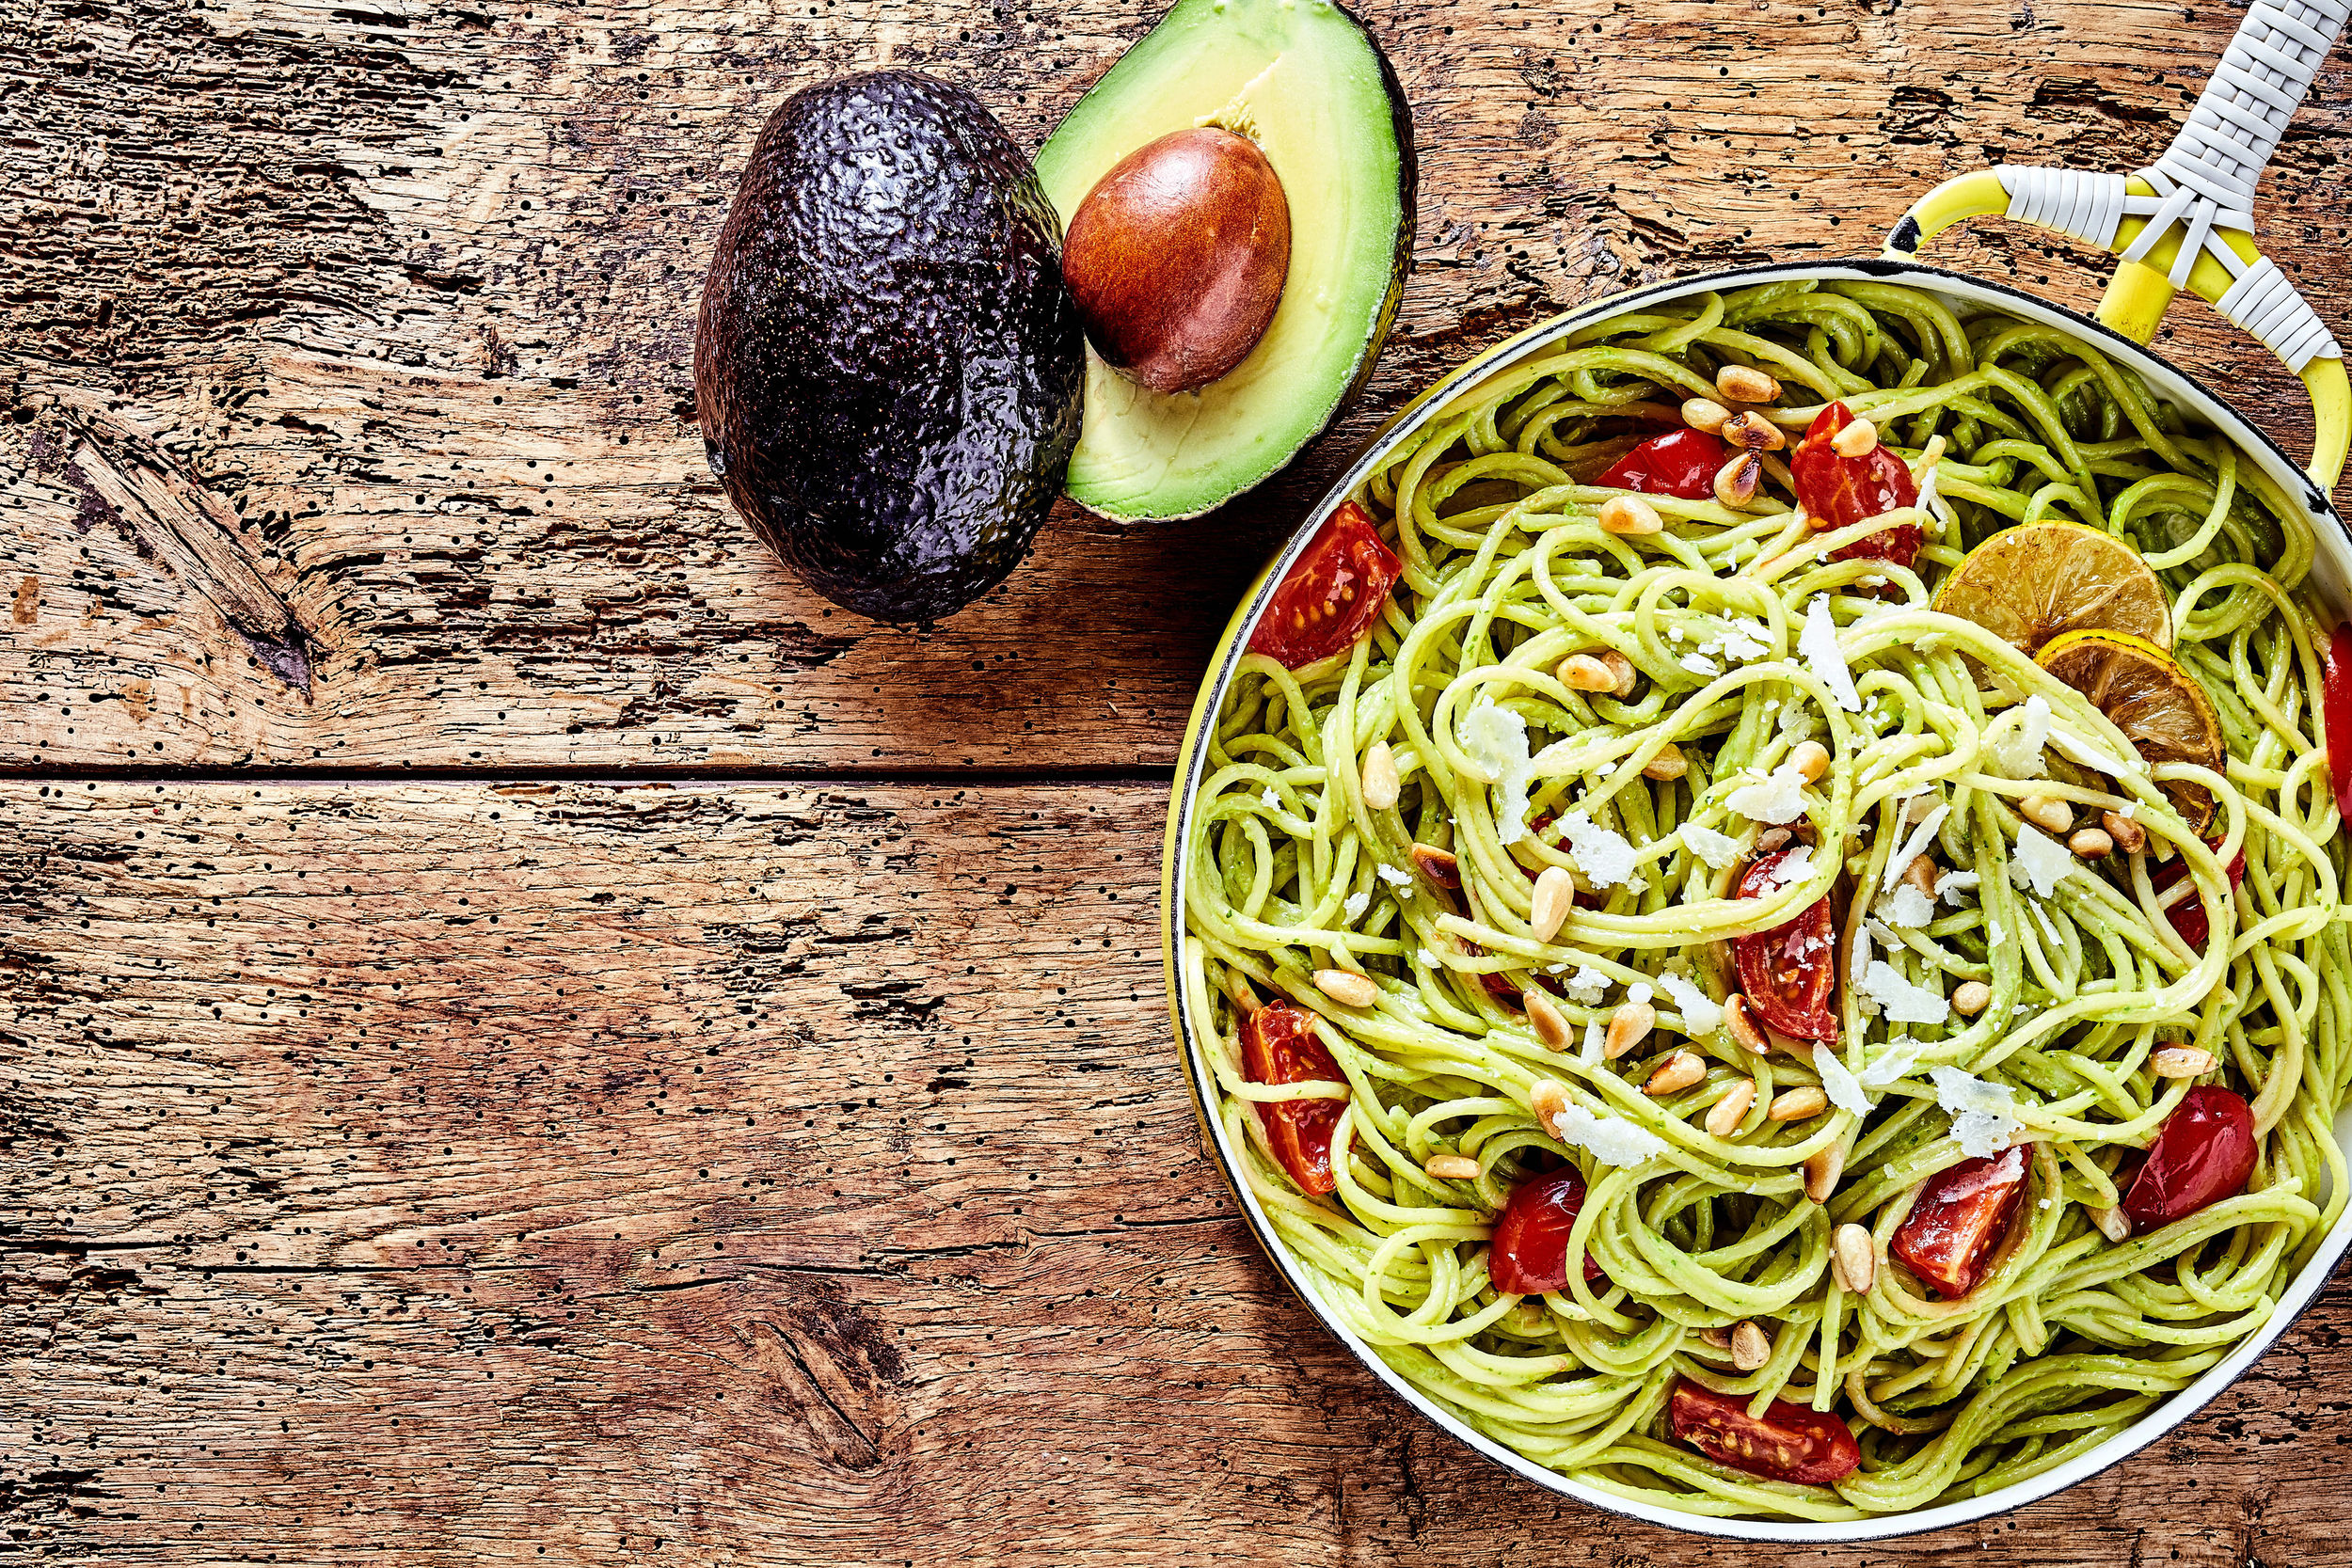 Zucchini Pasta with Avocado Sauce